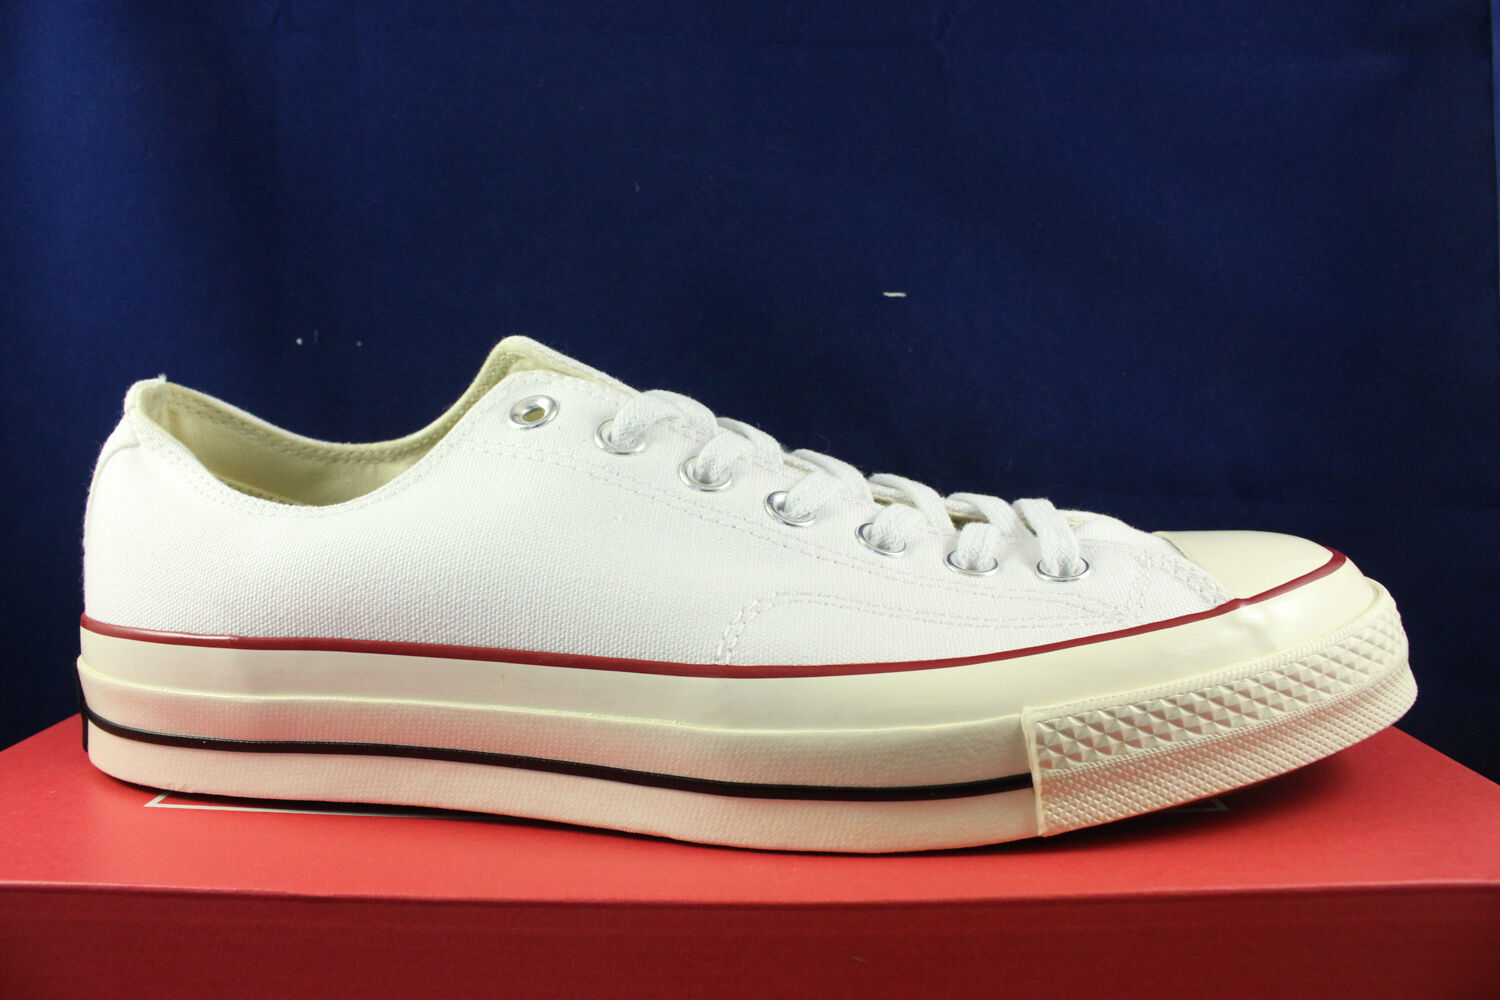 CONVERSE CHUCK TAYLOR 70 CT OX LOW WHITE RED BLUE 1970 ALL STAR 149448C SZ 10